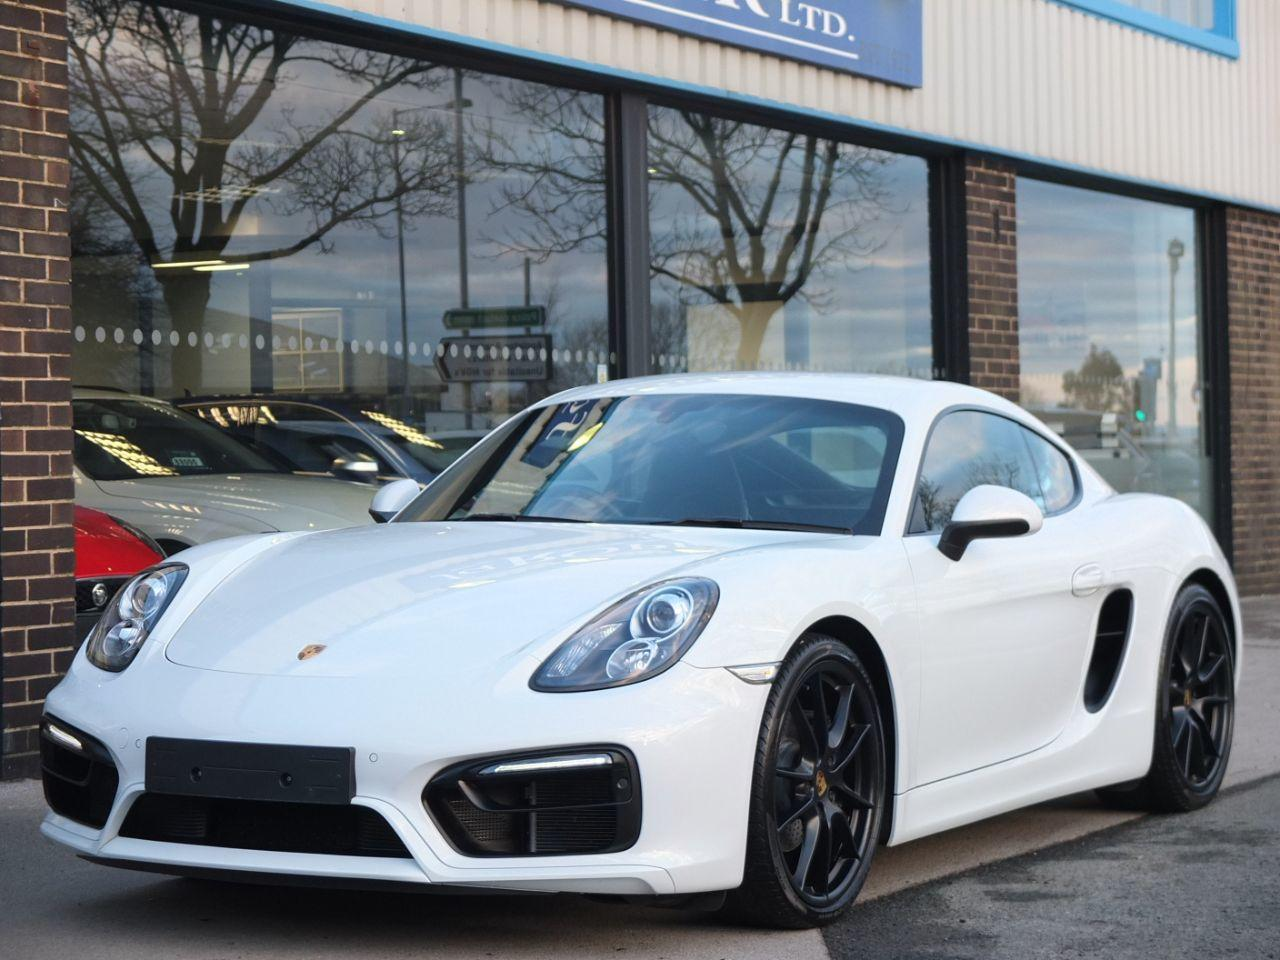 Porsche Cayman 2.7 PDK Sport Design Coupe Petrol Carrara White MetallicPorsche Cayman 2.7 PDK Sport Design Coupe Petrol Carrara White Metallic at fa Roper Ltd Bradford